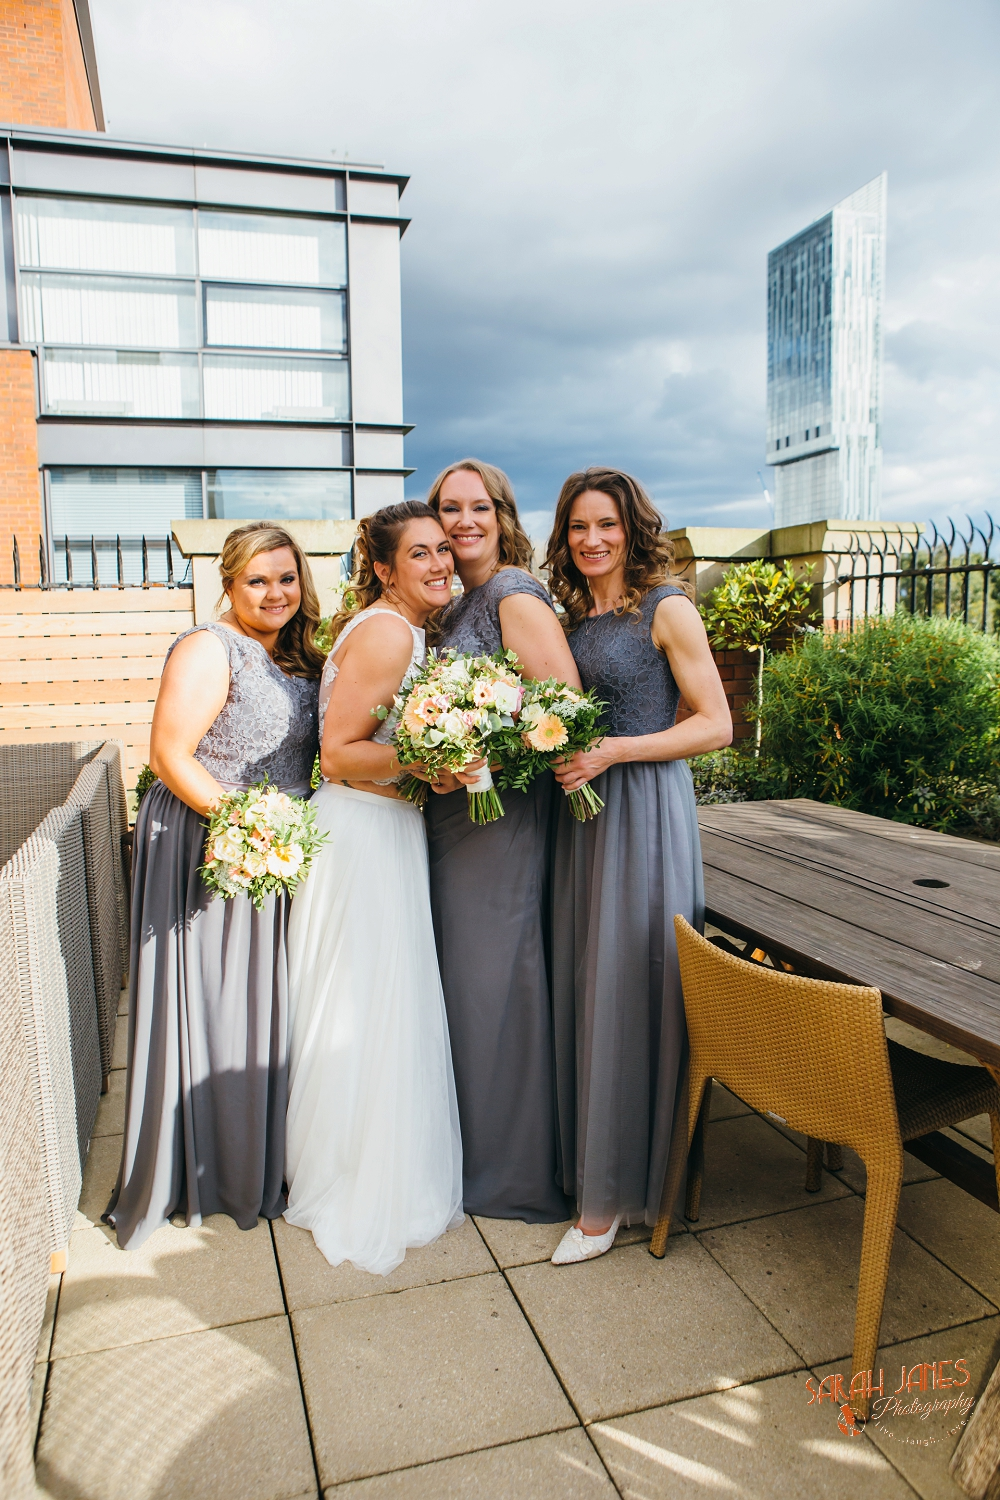 Sarah Janes Photography. Manchester wedding photographer, documentray wedding photographer Manchester, Great John Street wedding photography_0038.jpg